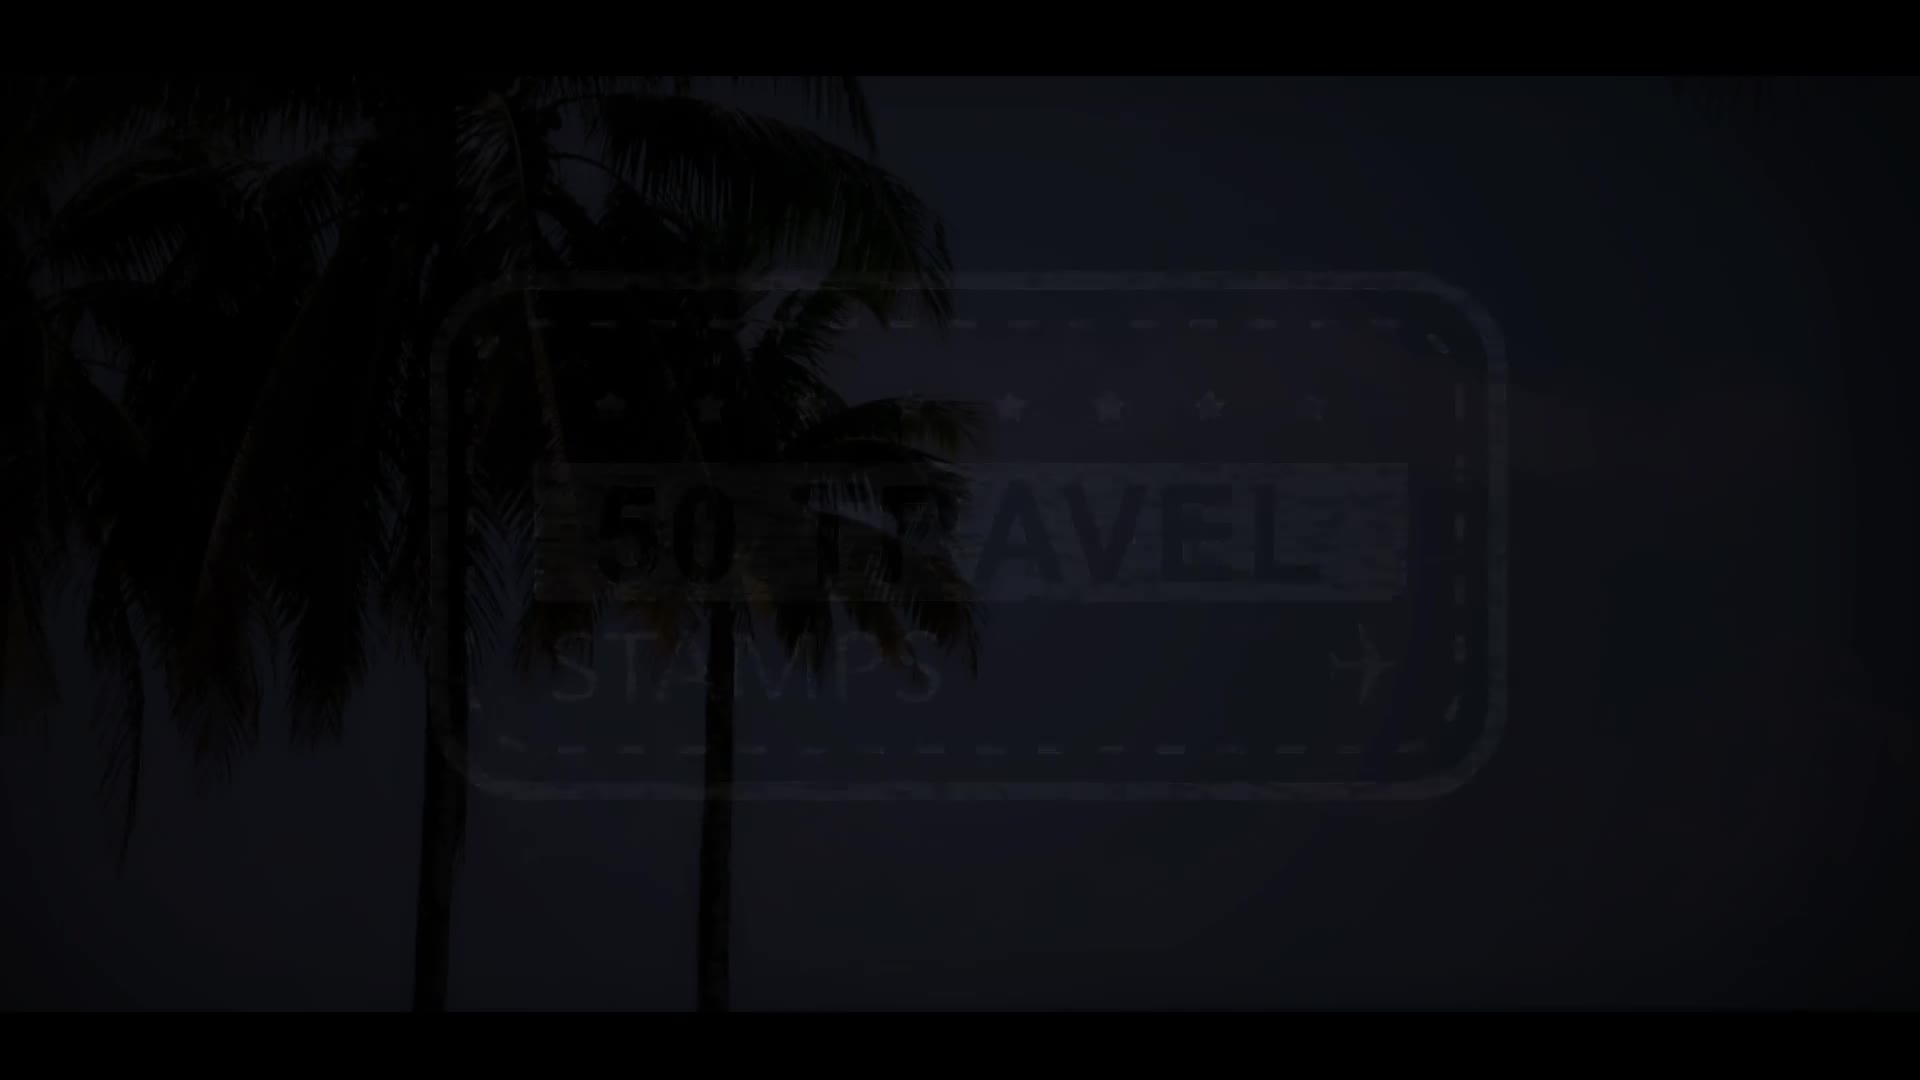 50 Travel Stamps Videohive 23673412 After Effects Image 1